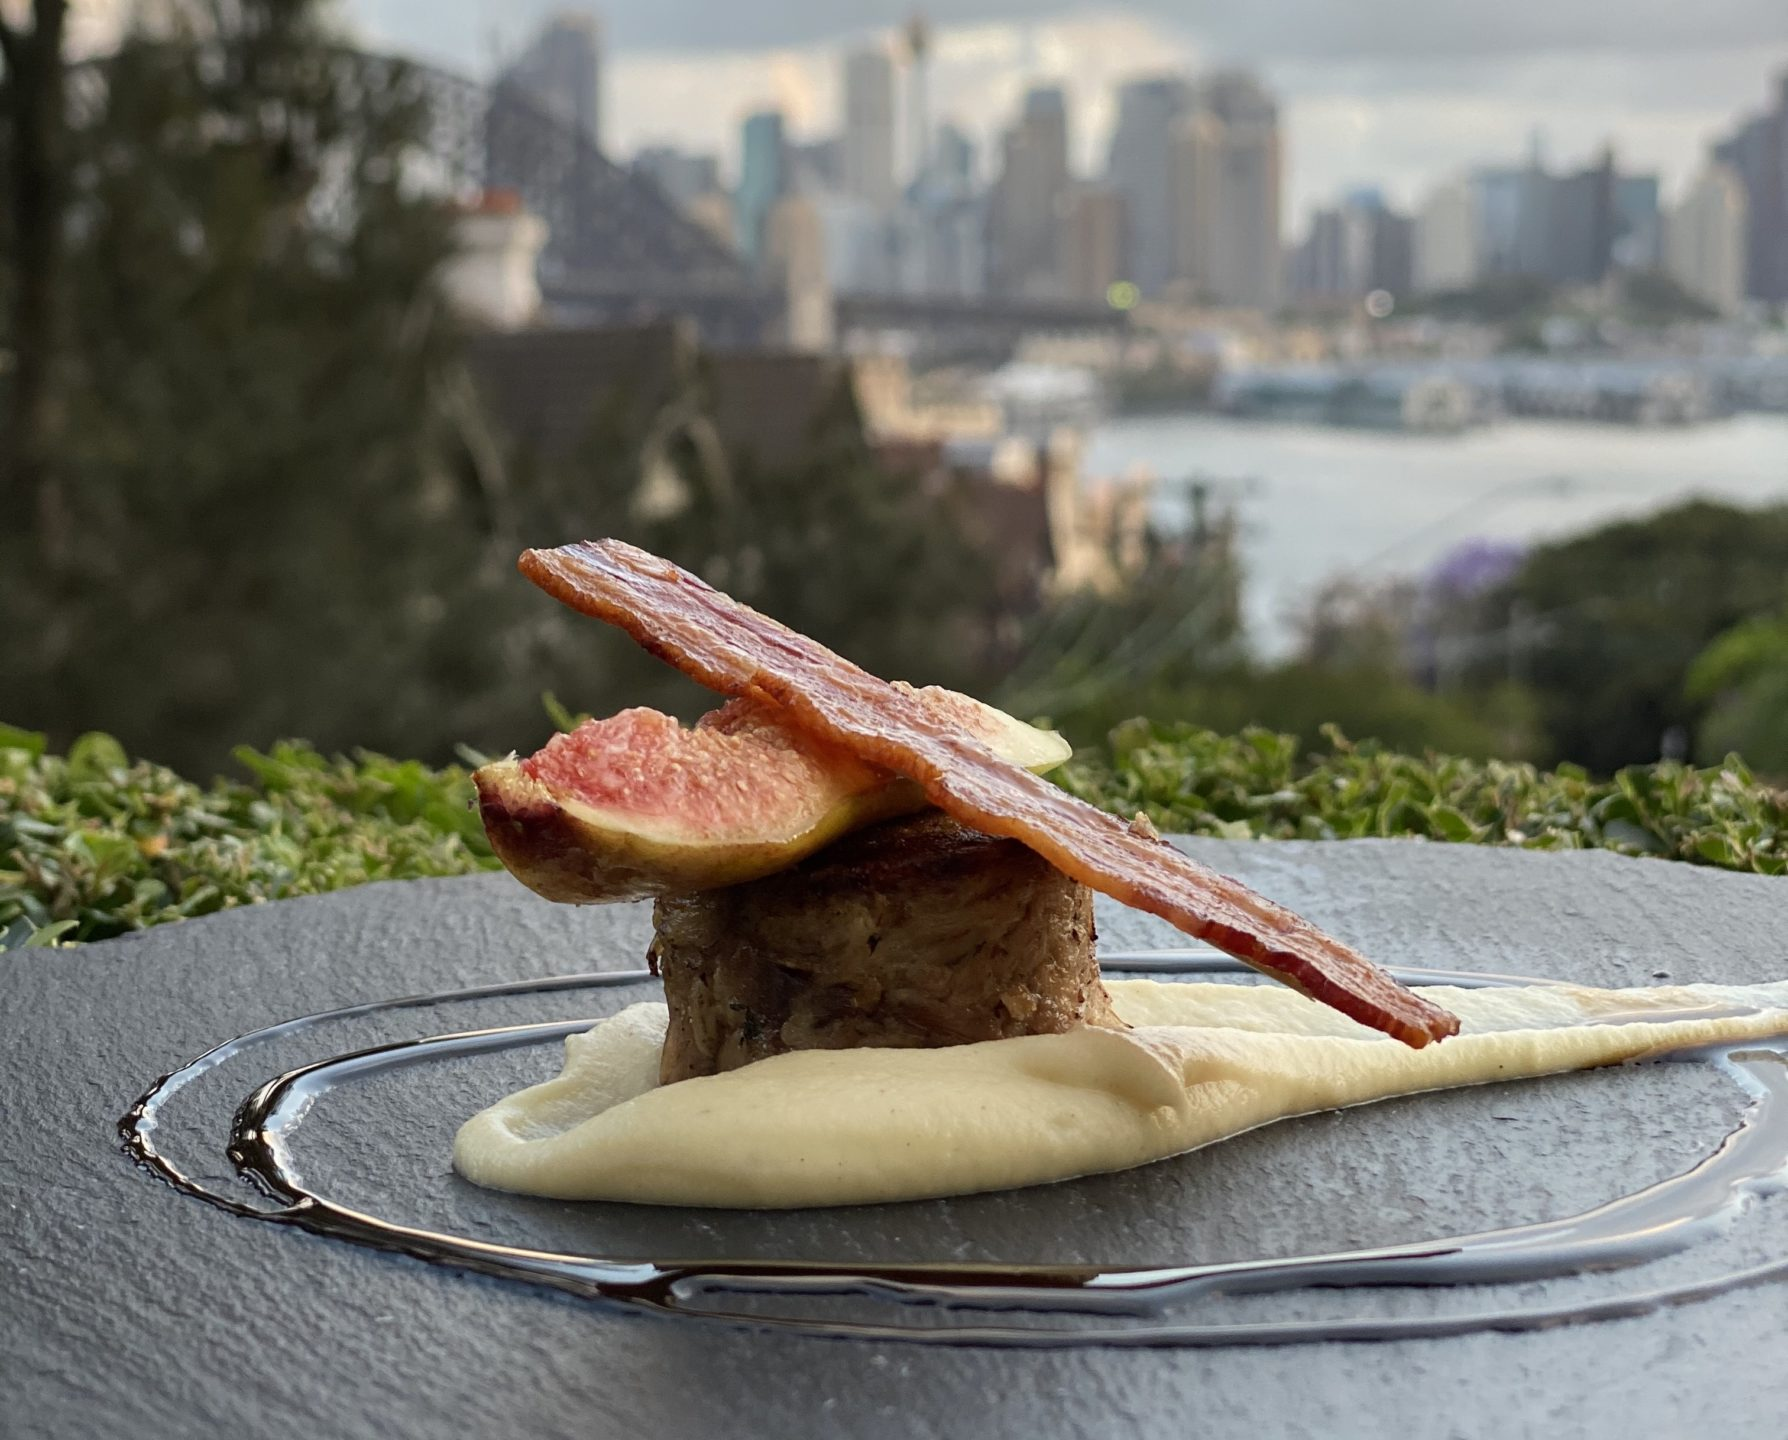 New Year's Eve dinner dish with Sydney Harbour VIews in Background